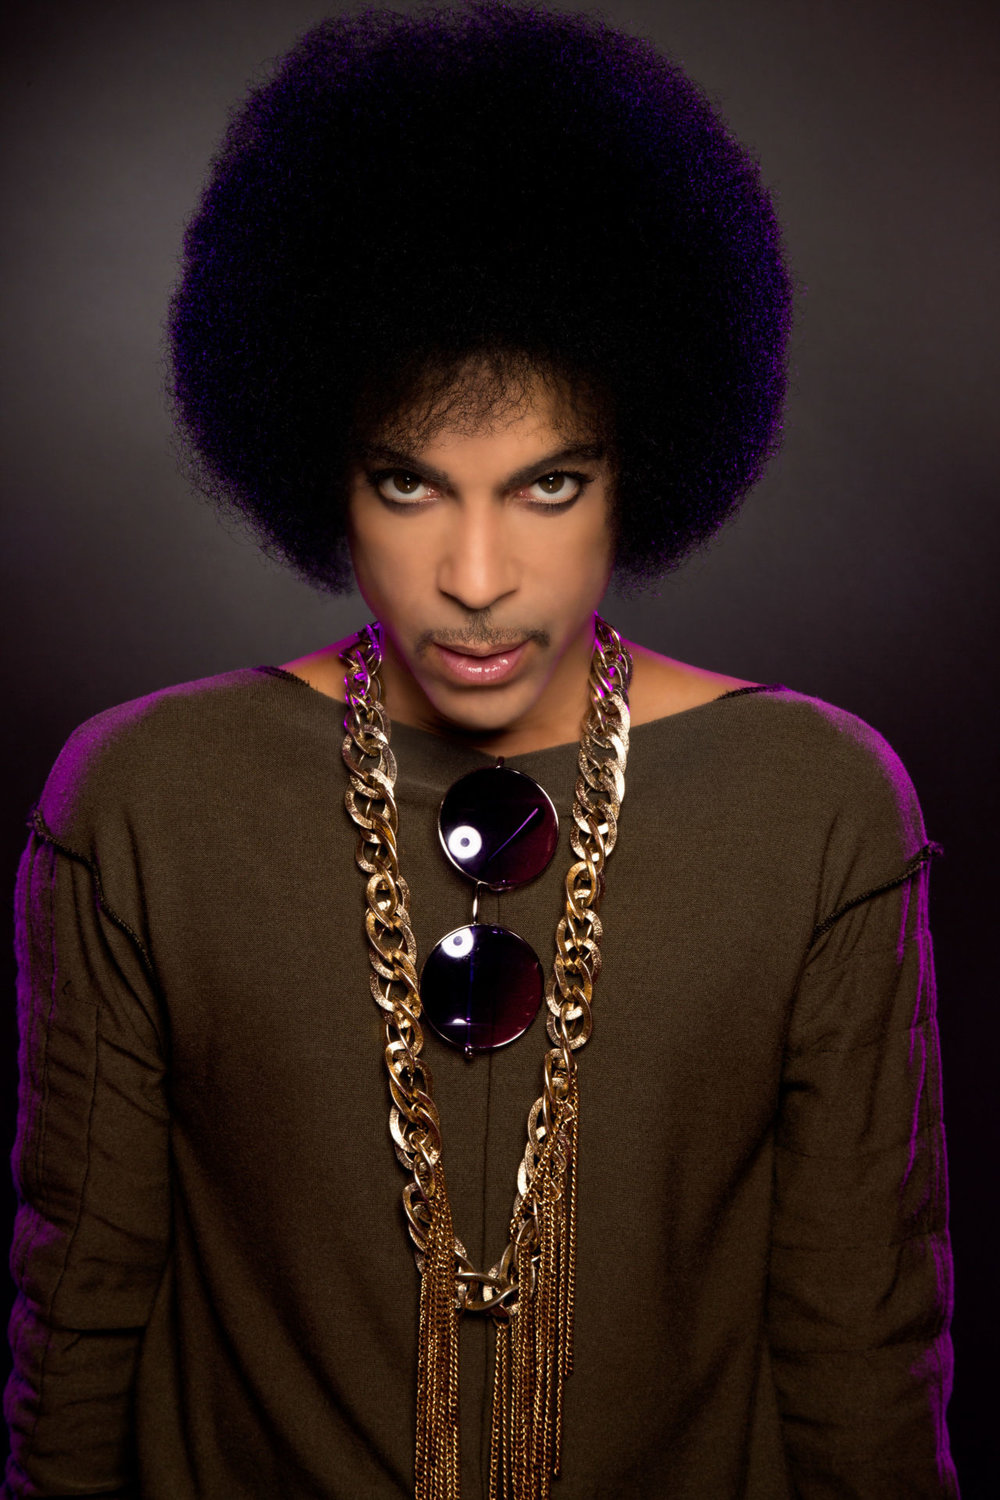 pitchfork :      Prince has died.  The iconic musician was found dead this morning at his Paisley Park estate in Chanhassen, Minnesota. He was 57.